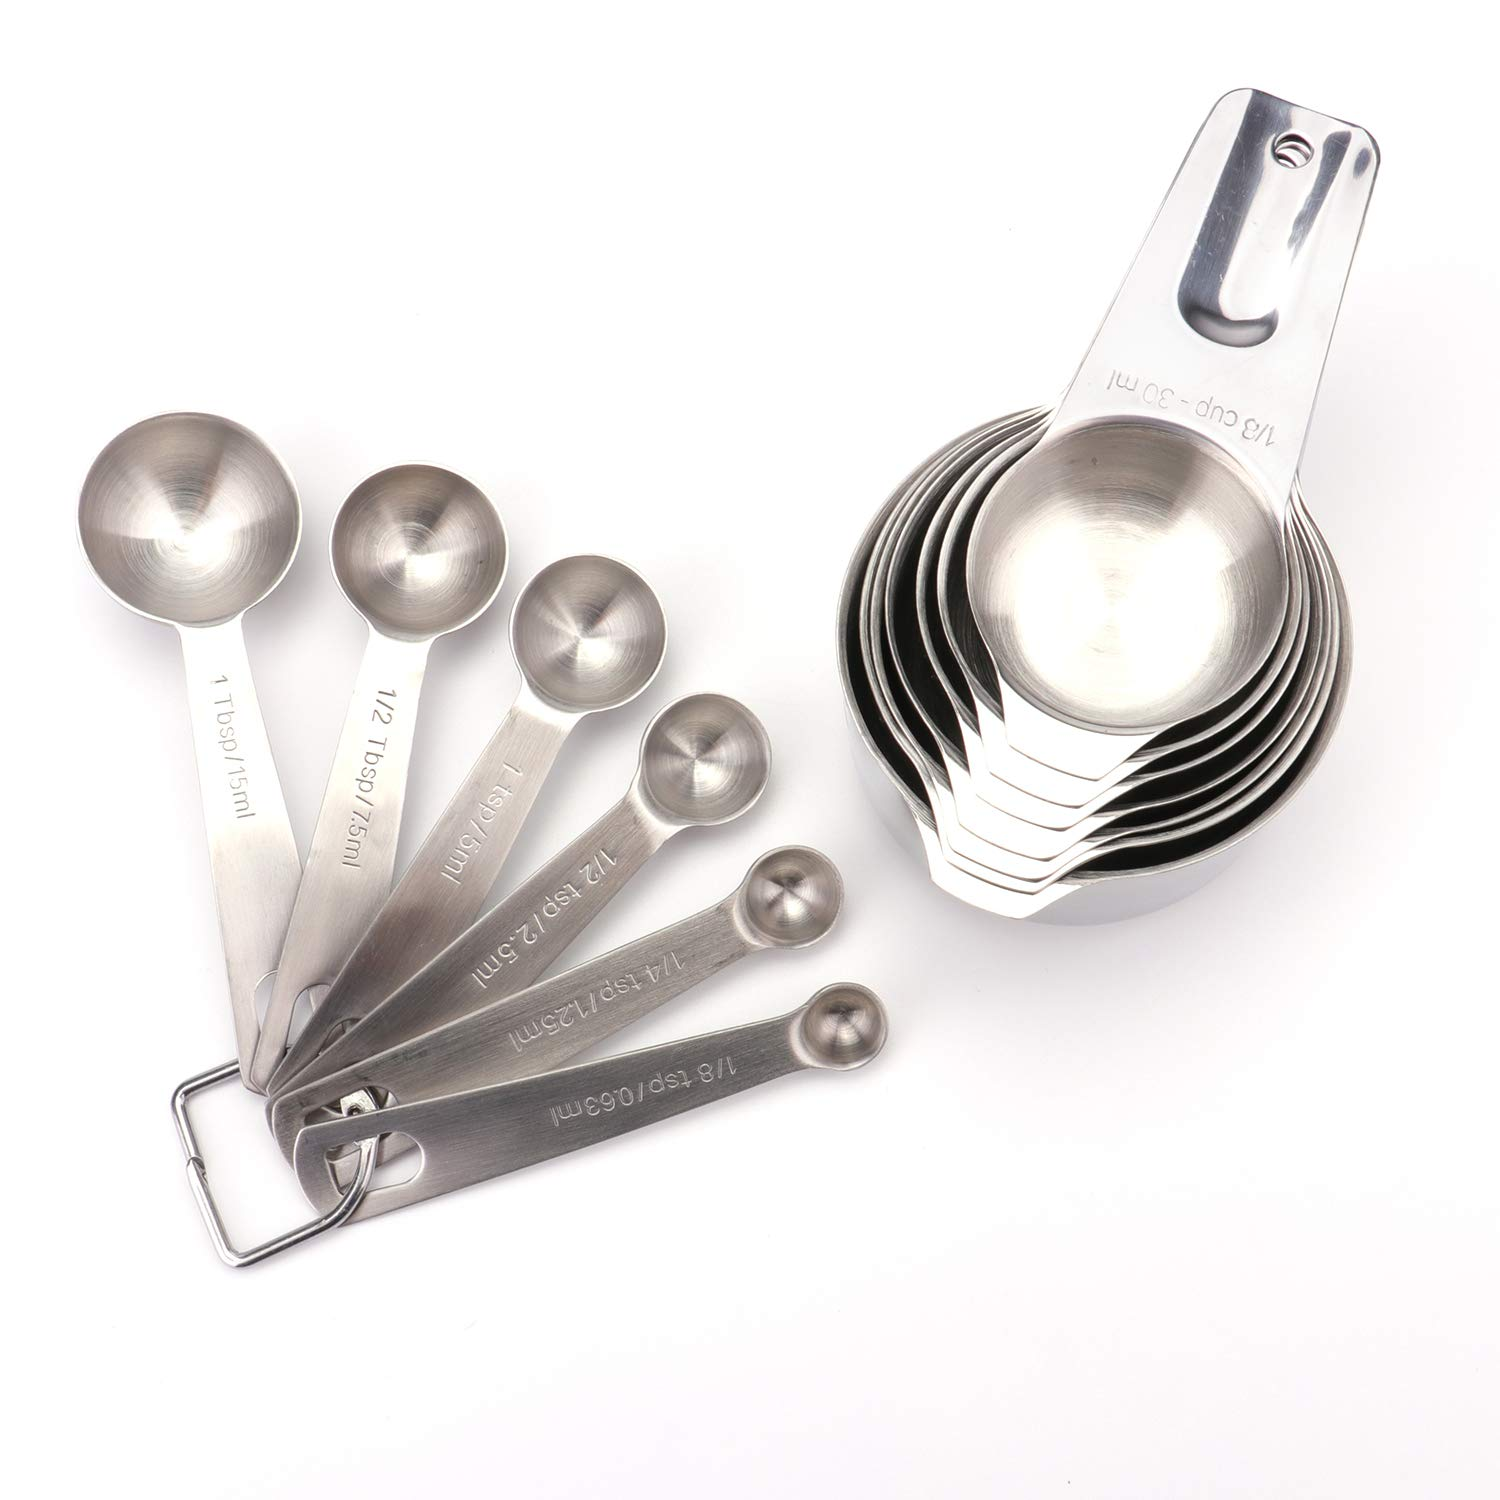 Fasmov 13 Piece Stainless Steel Measuring Cups And Spoons Set- 7 Measuring Cups and 6 Measuring Spoons with 2 D-Rings